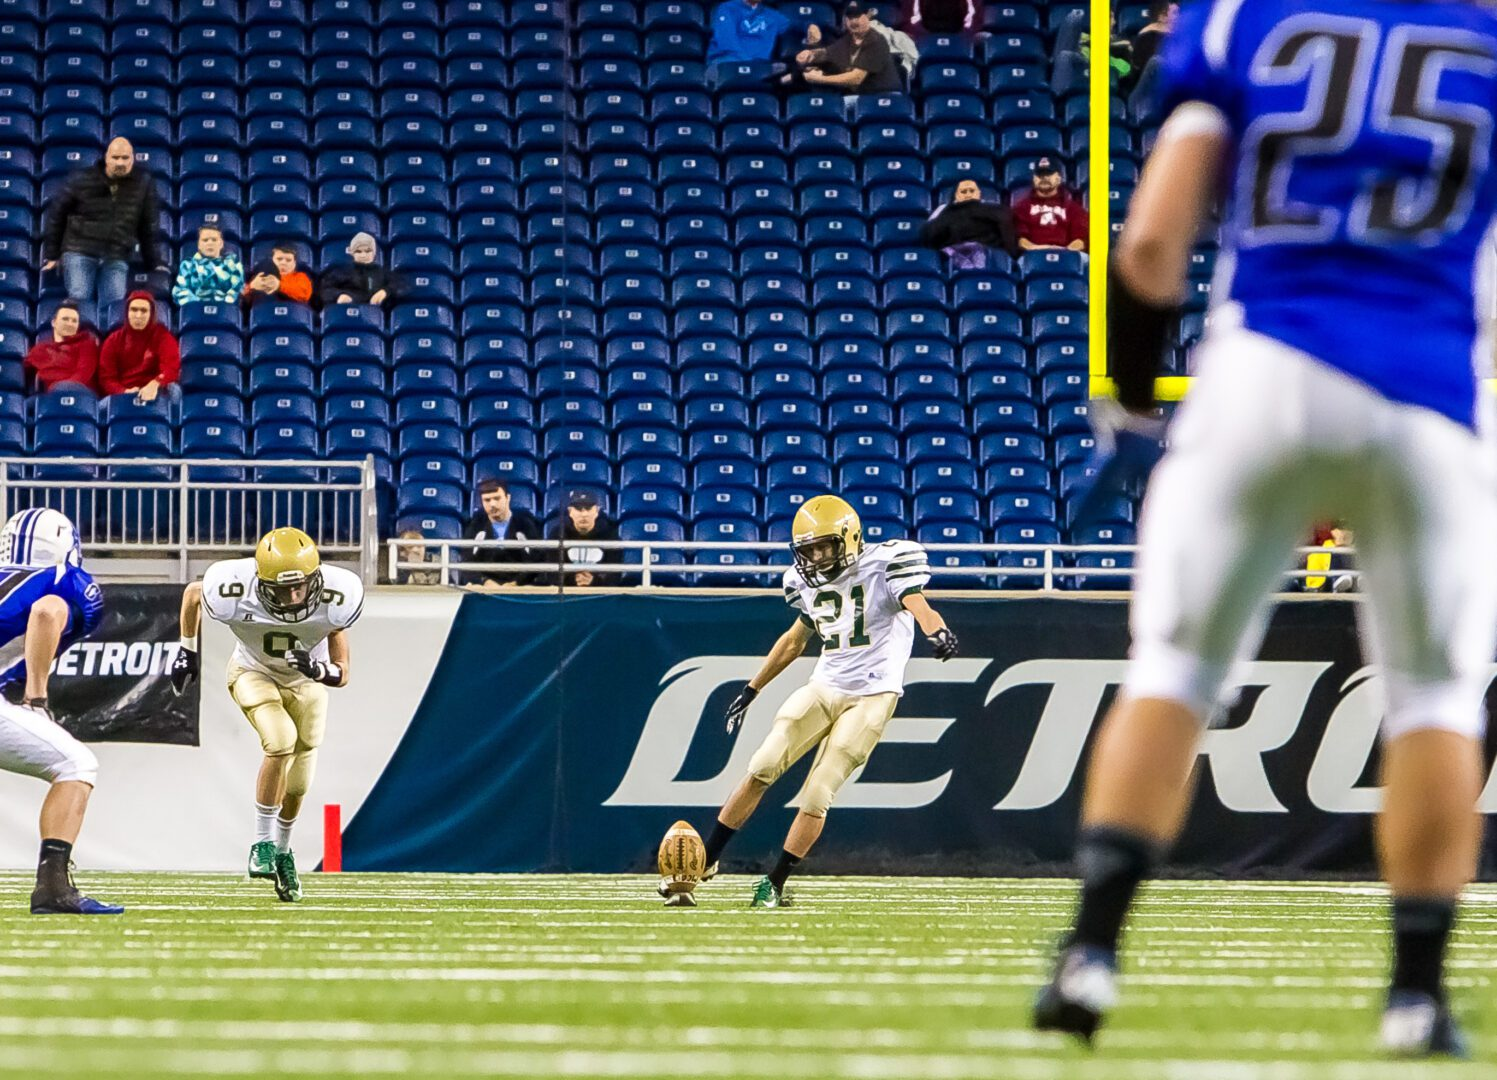 MCC's Mr. Automatic: Placekicker Griffen Seymour is nearly perfect with crucial extra point attempts